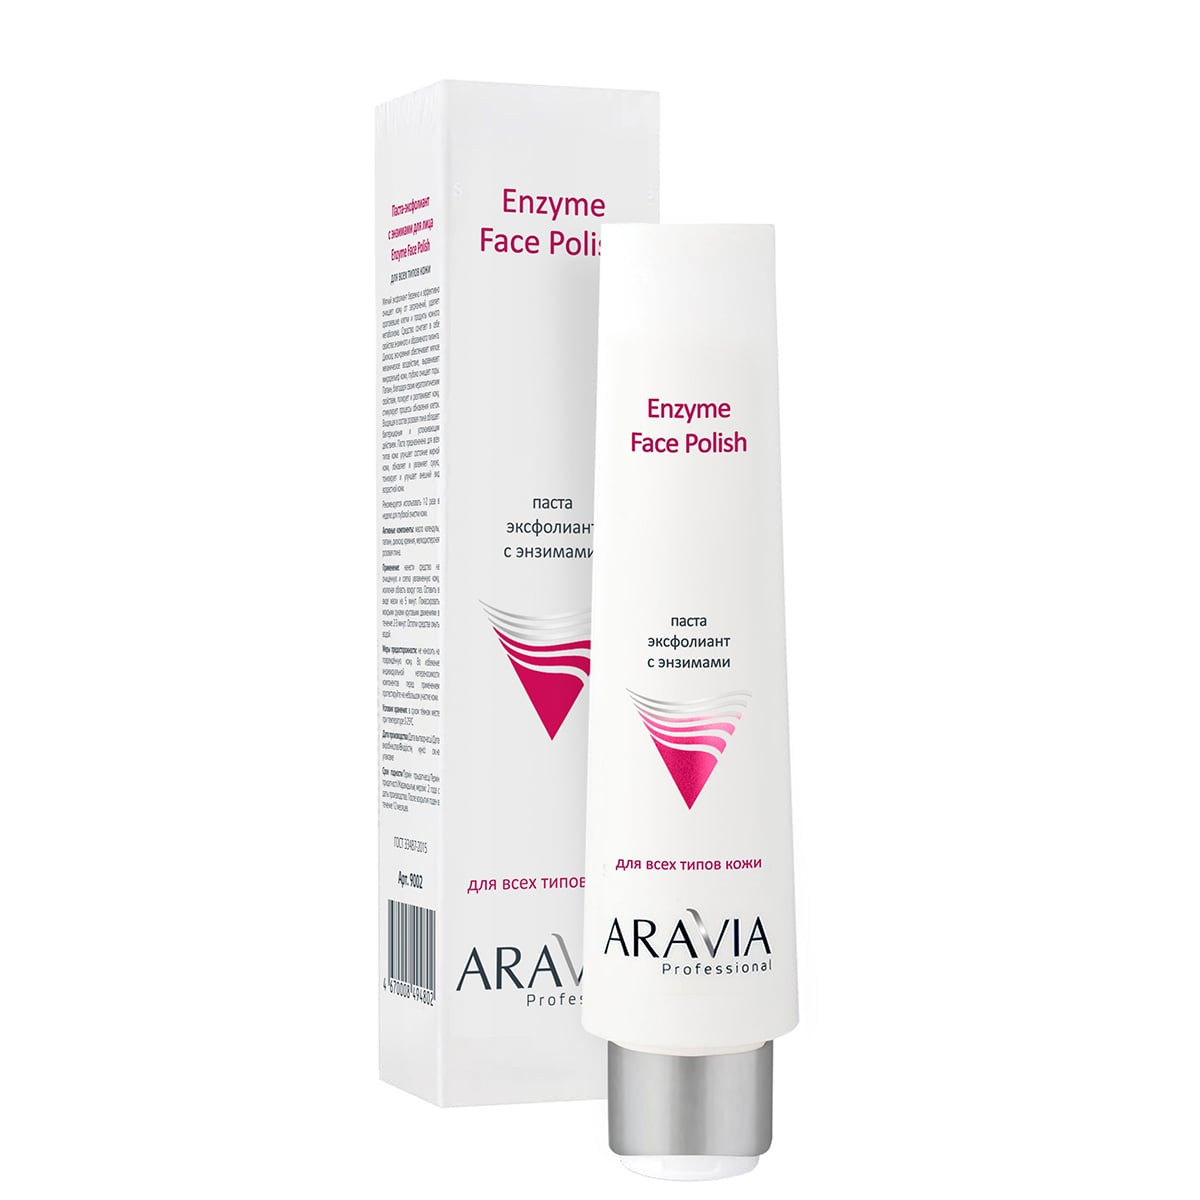 Паста-эксфолиант для лица с энзимами Aravia Enzyme Face Polish